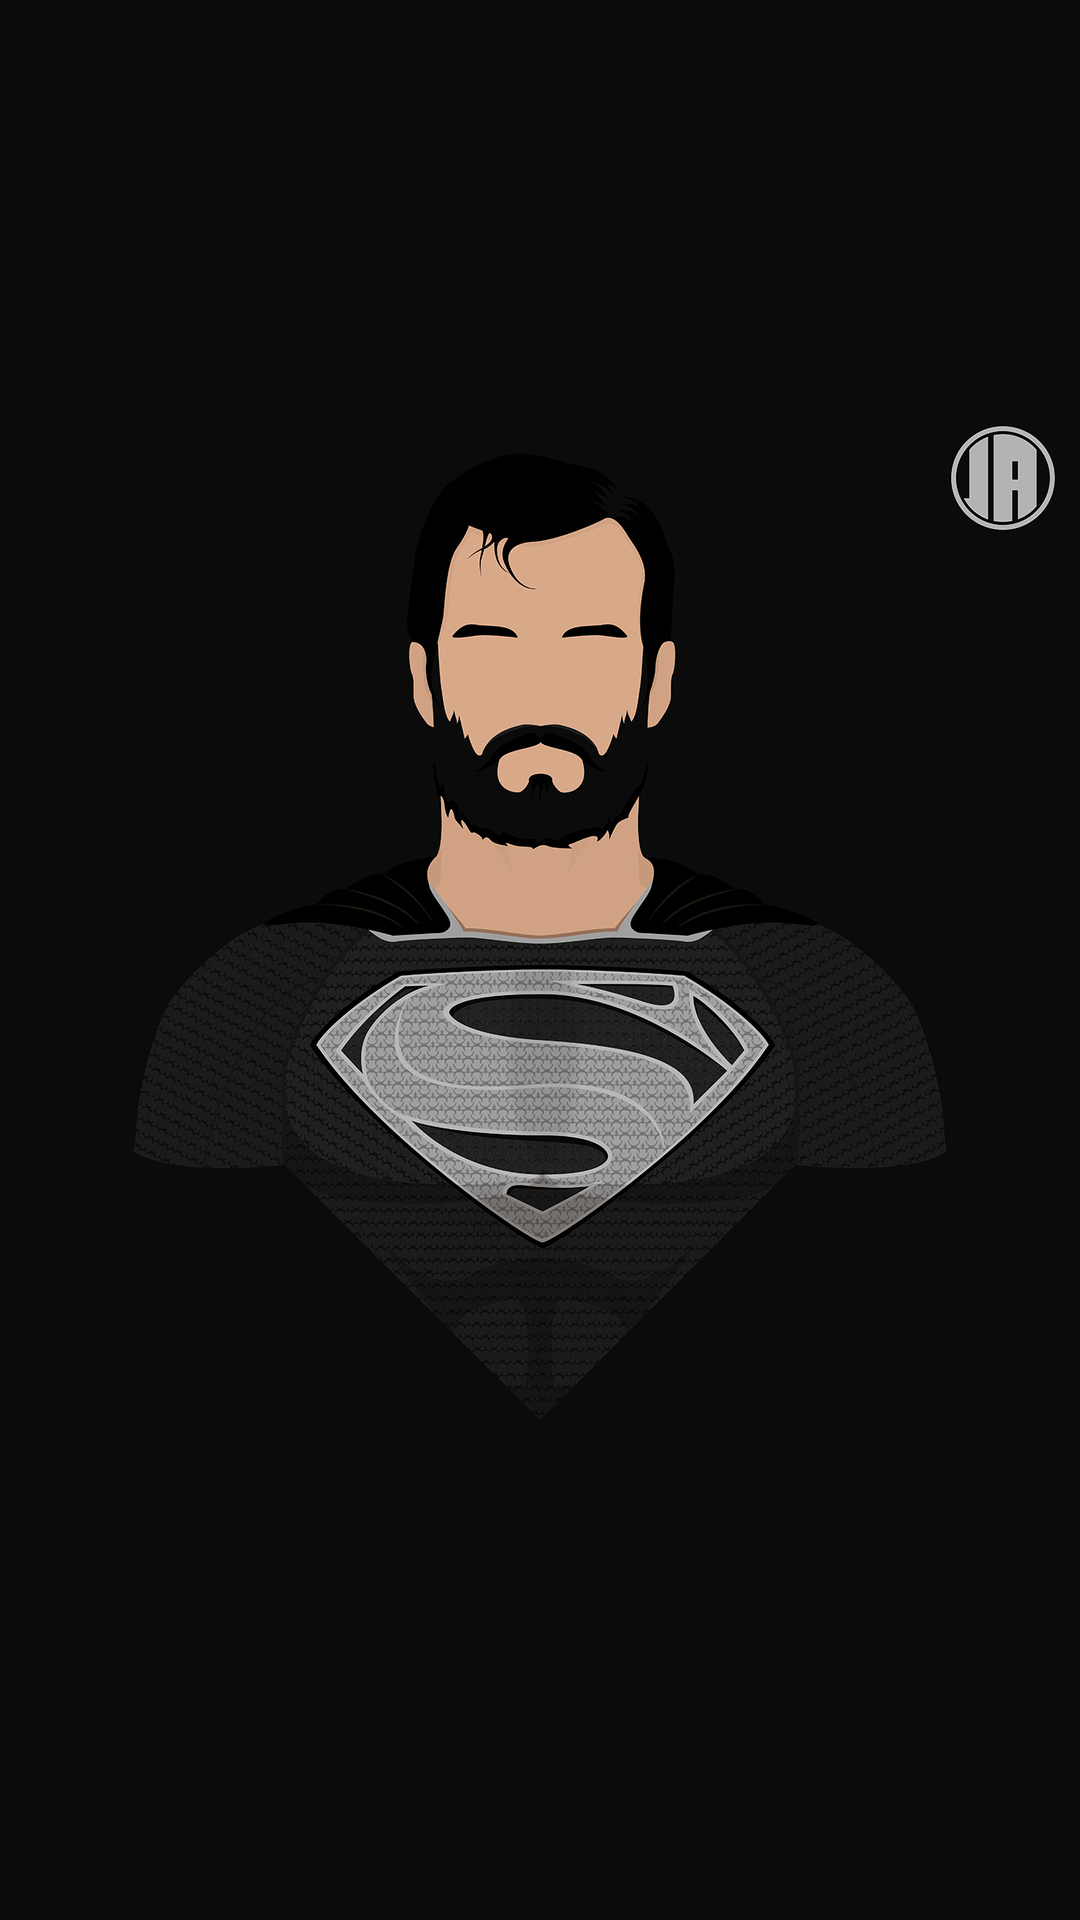 1080x1920 Superman Dceu Minimalism 8k Iphone 7 6s 6 Plus Pixel Xl